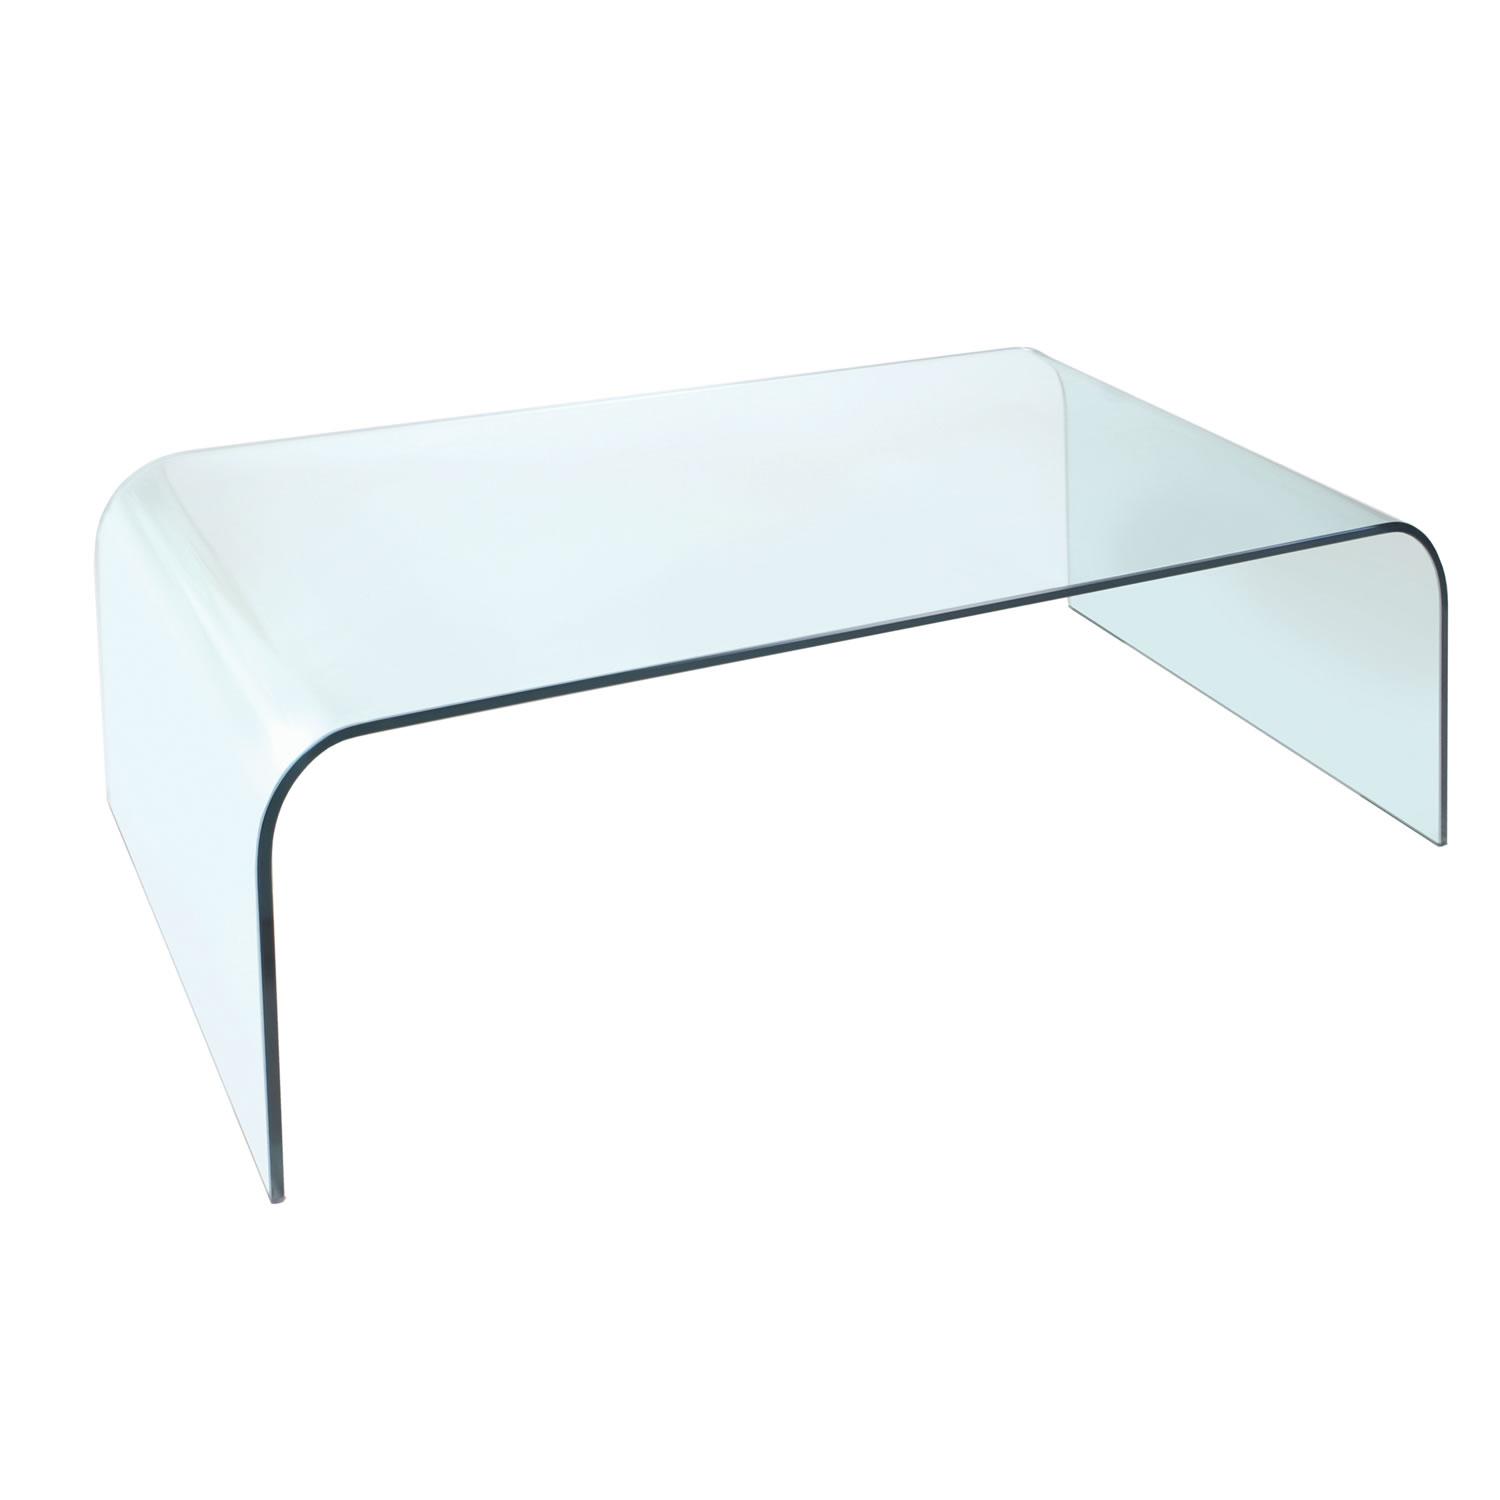 Inspiring acrylic coffee table for home furniture with clear acrylic coffee table